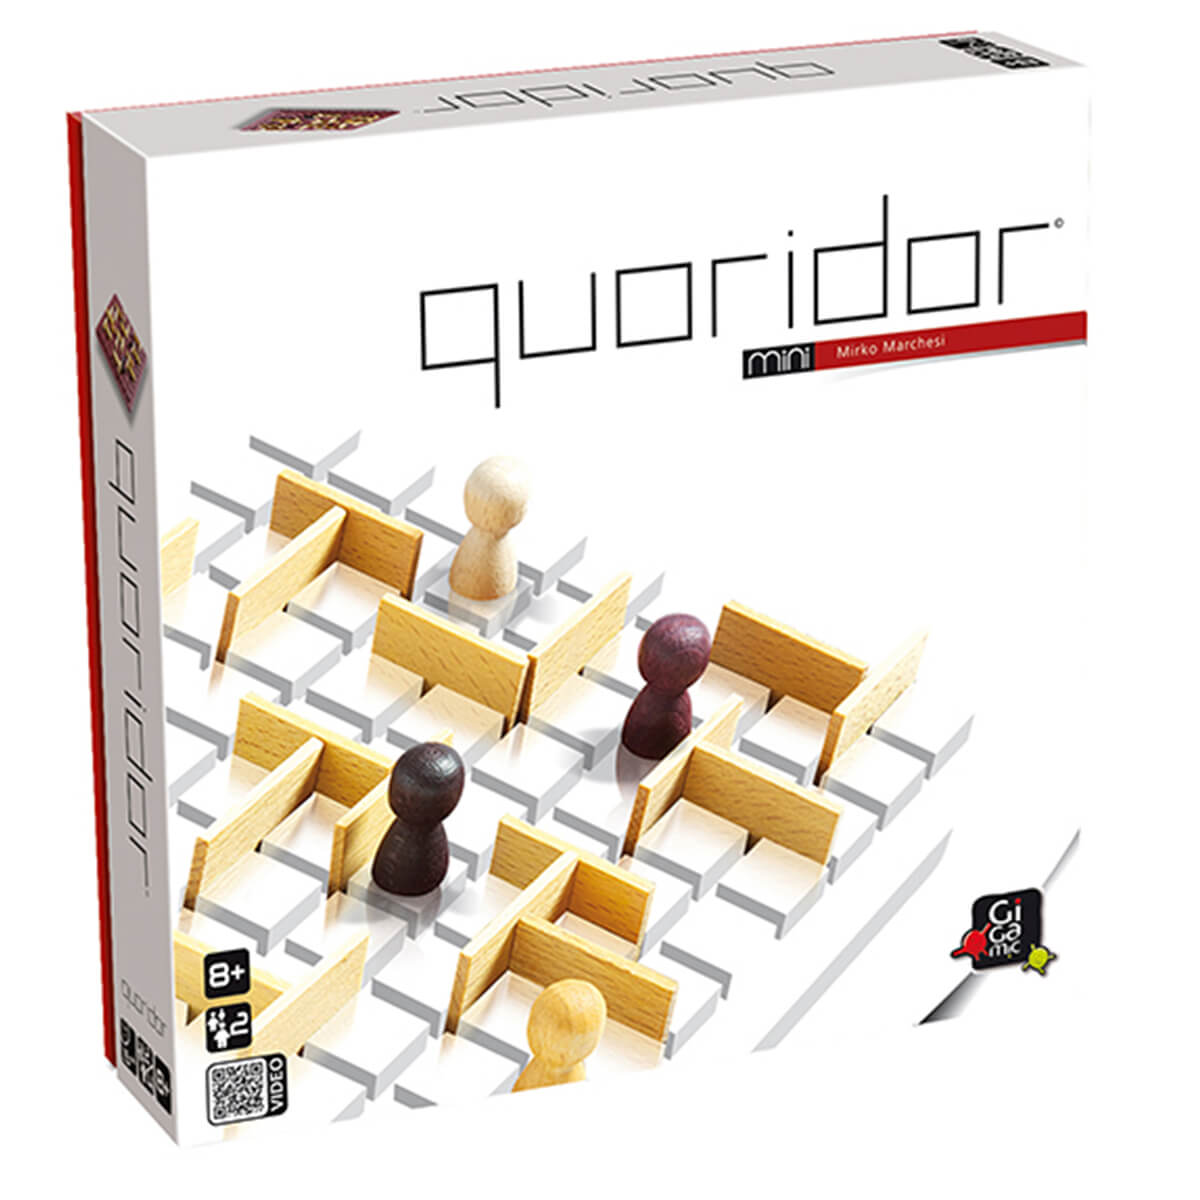 Gigamic Quoridor mini GDQO Board Game